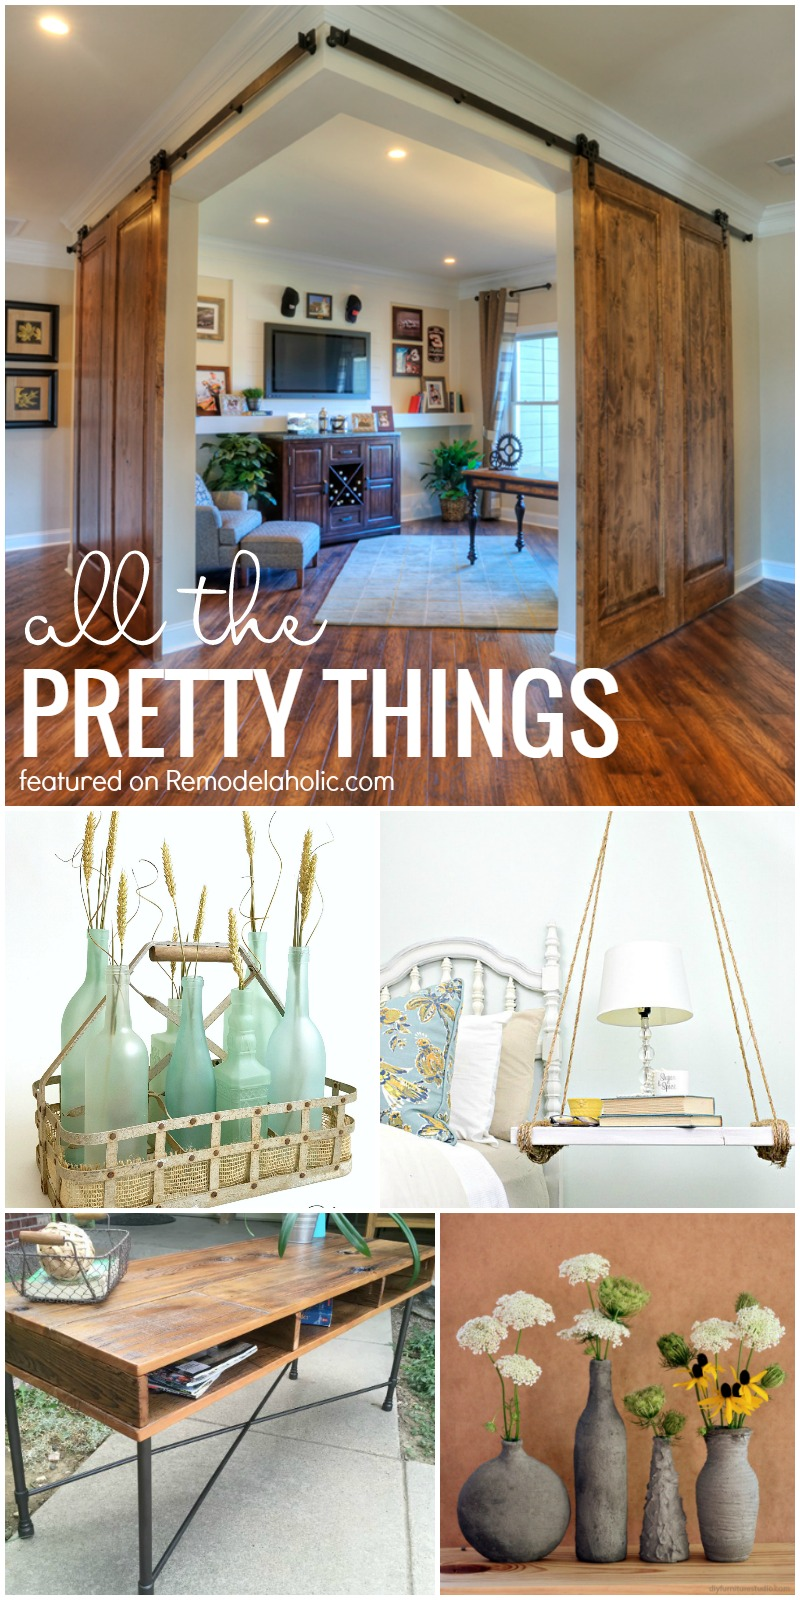 Friday Favorites - corner barn doors uses for recycled glass and more! Get & Remodelaholic   Friday Favorites: Barn Door Corner Office and ...